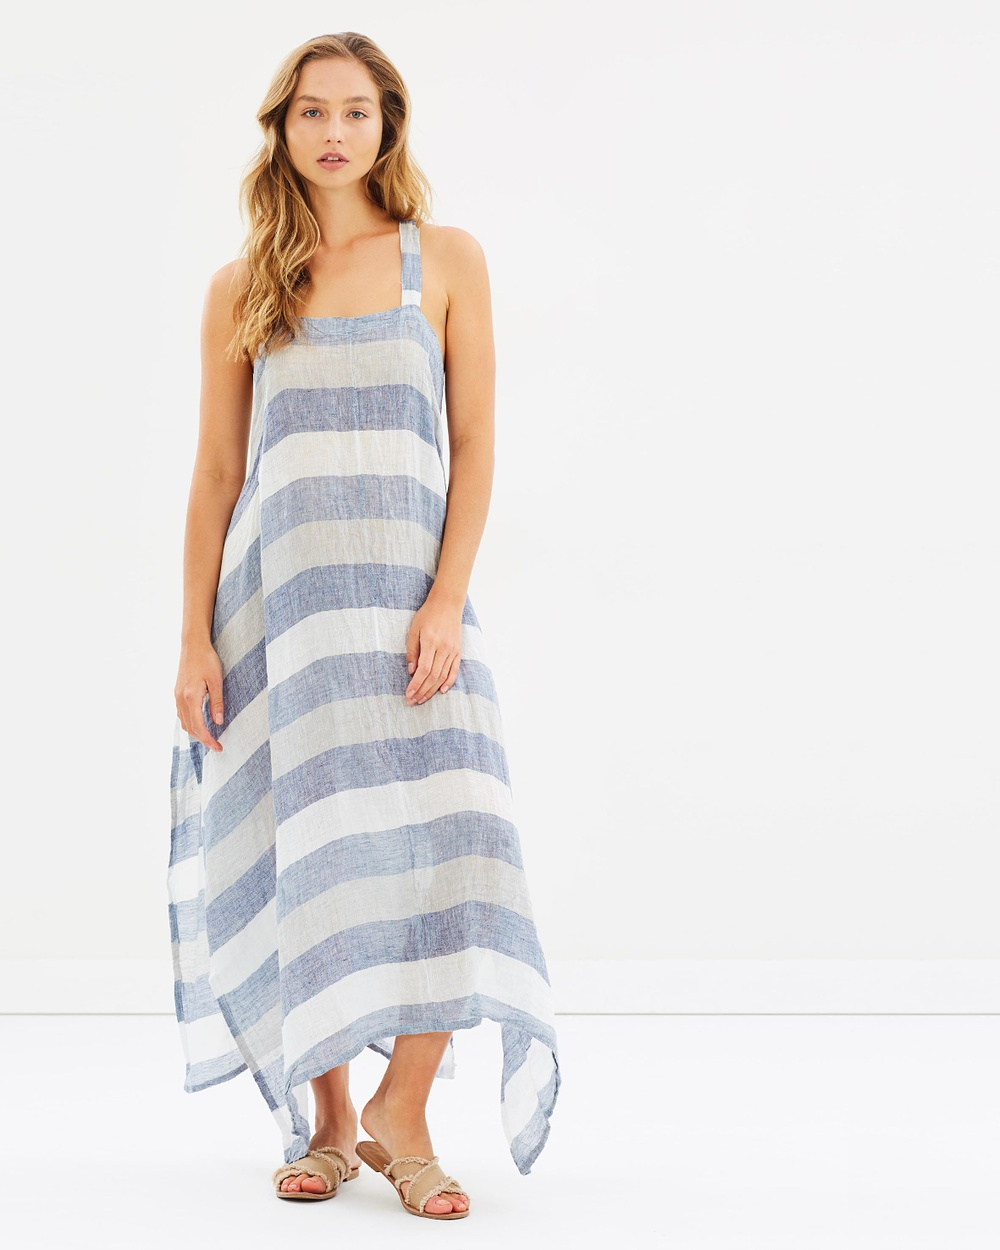 Estilo Emporio Aquilone Dress Dresses Denim Stripe Aquilone Dress